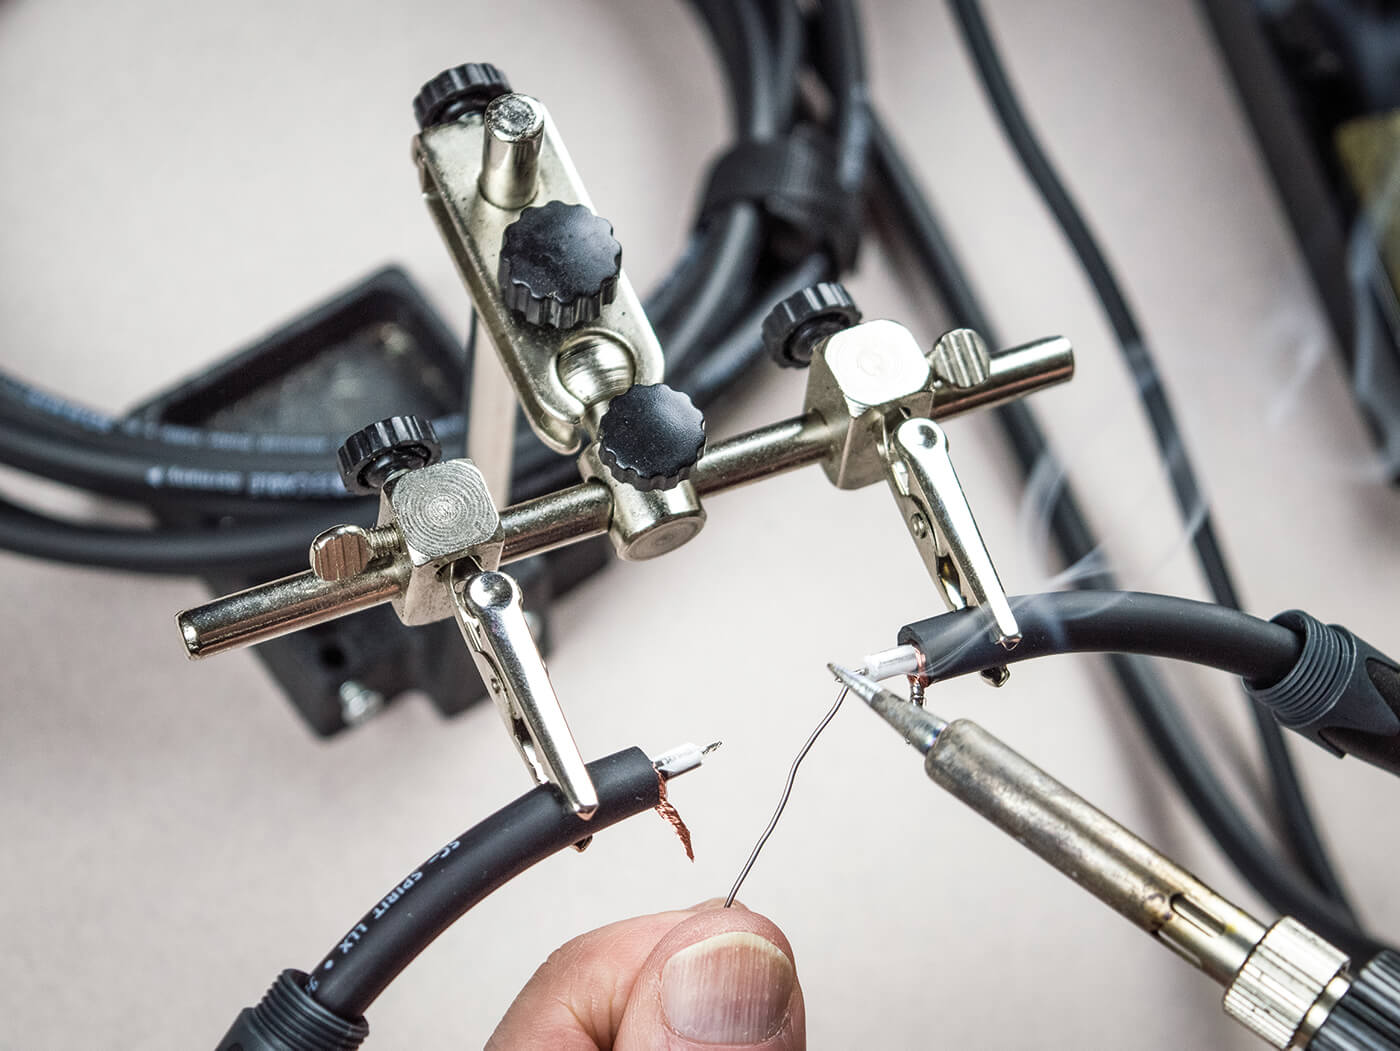 DIY Complete Guide to Soldering Tinning Wires